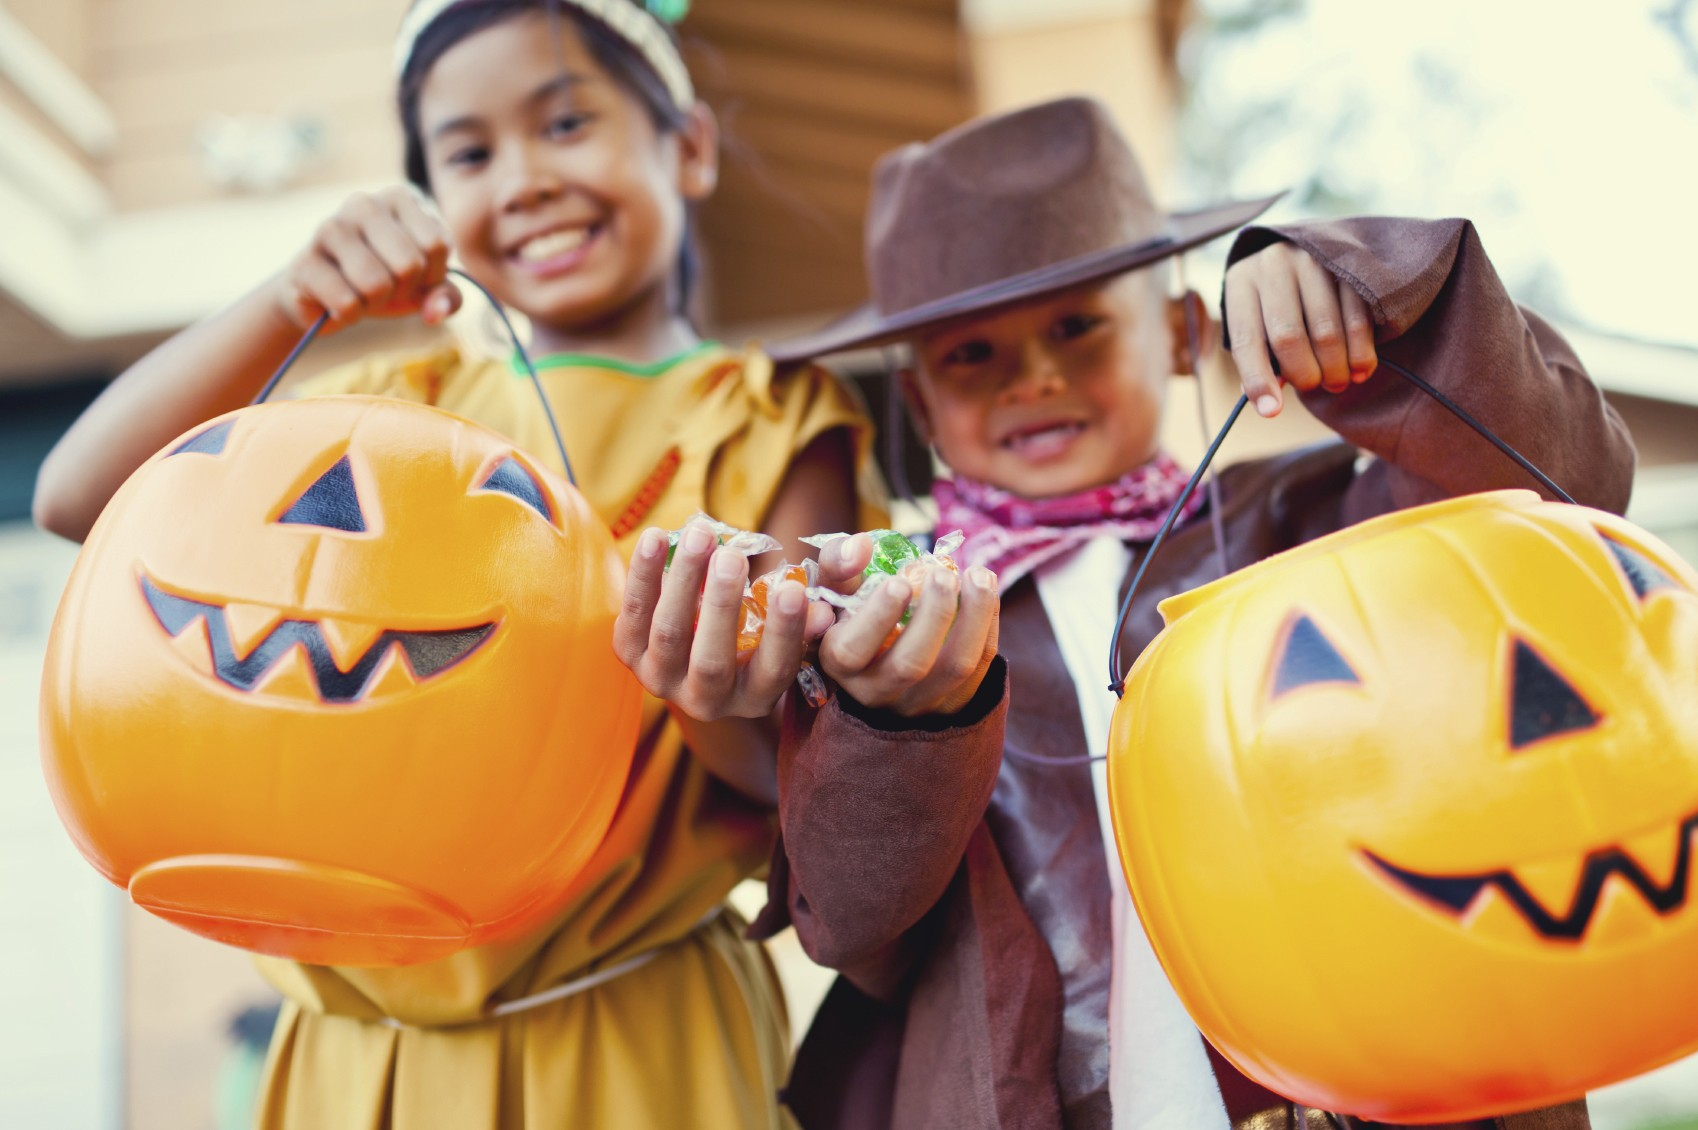 Last year, an estimated 41.2 million U.S. children aged 5 to 14 participated in trick-or-treating.